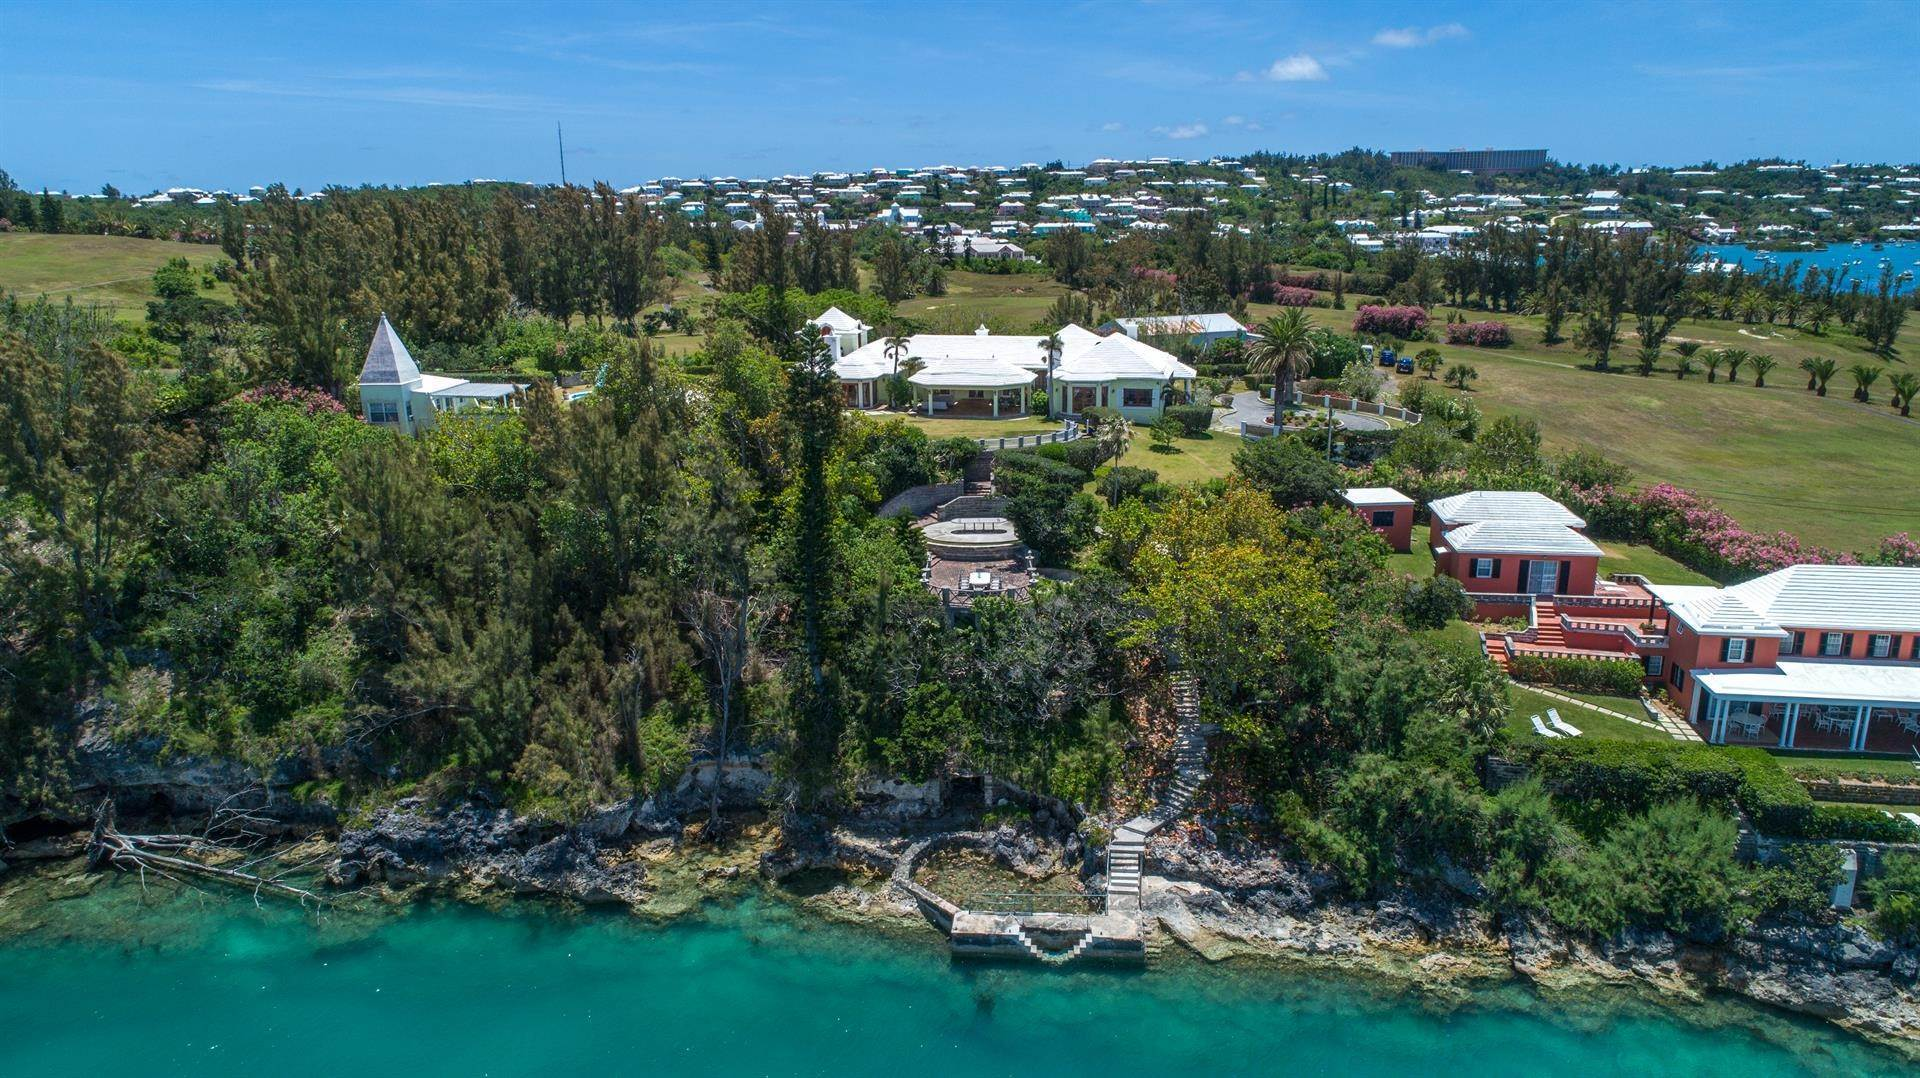 Waterfront Property for Sale at Heron Hill On The Great Sound Heron Hill On The Great Sound, 31 Riddell's Bay Road,Bermuda – Sinclair Realty